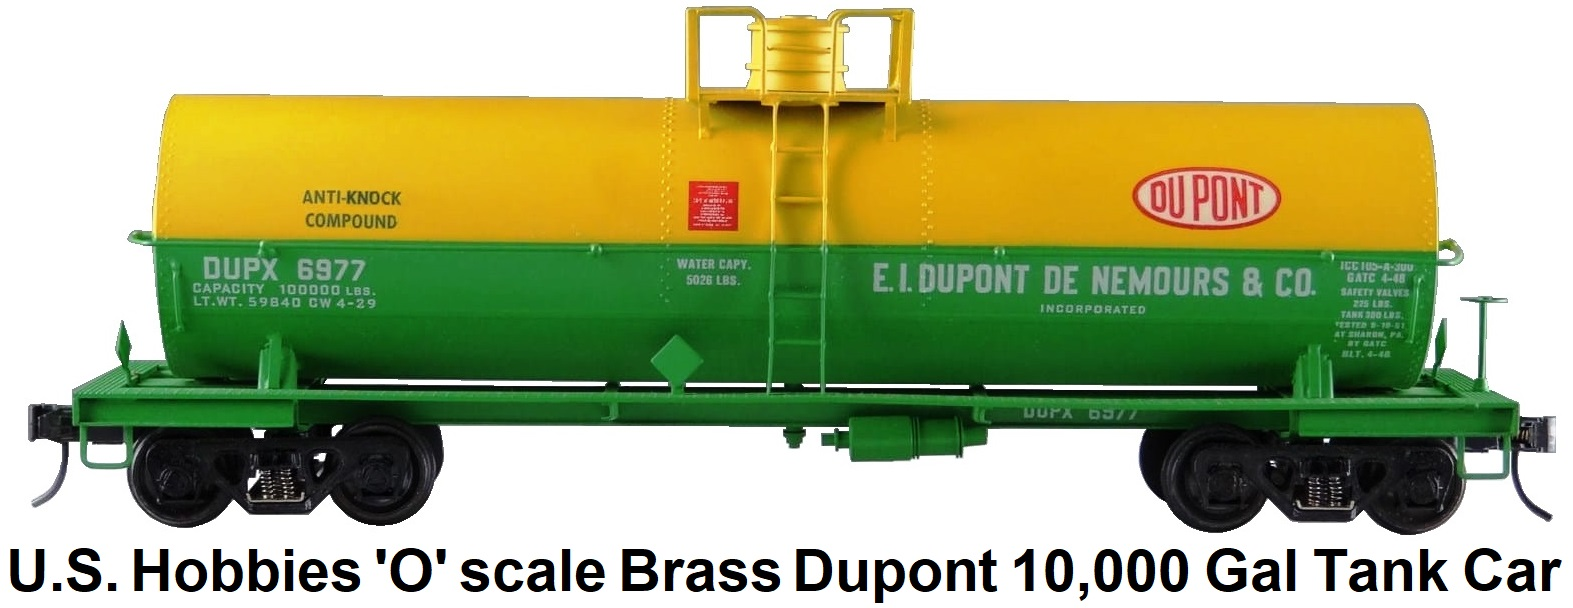 U.S. Hobbies Inc. 'O' scale Brass Import KTM E.I. Dupont 10,000 Gallon Tank Car